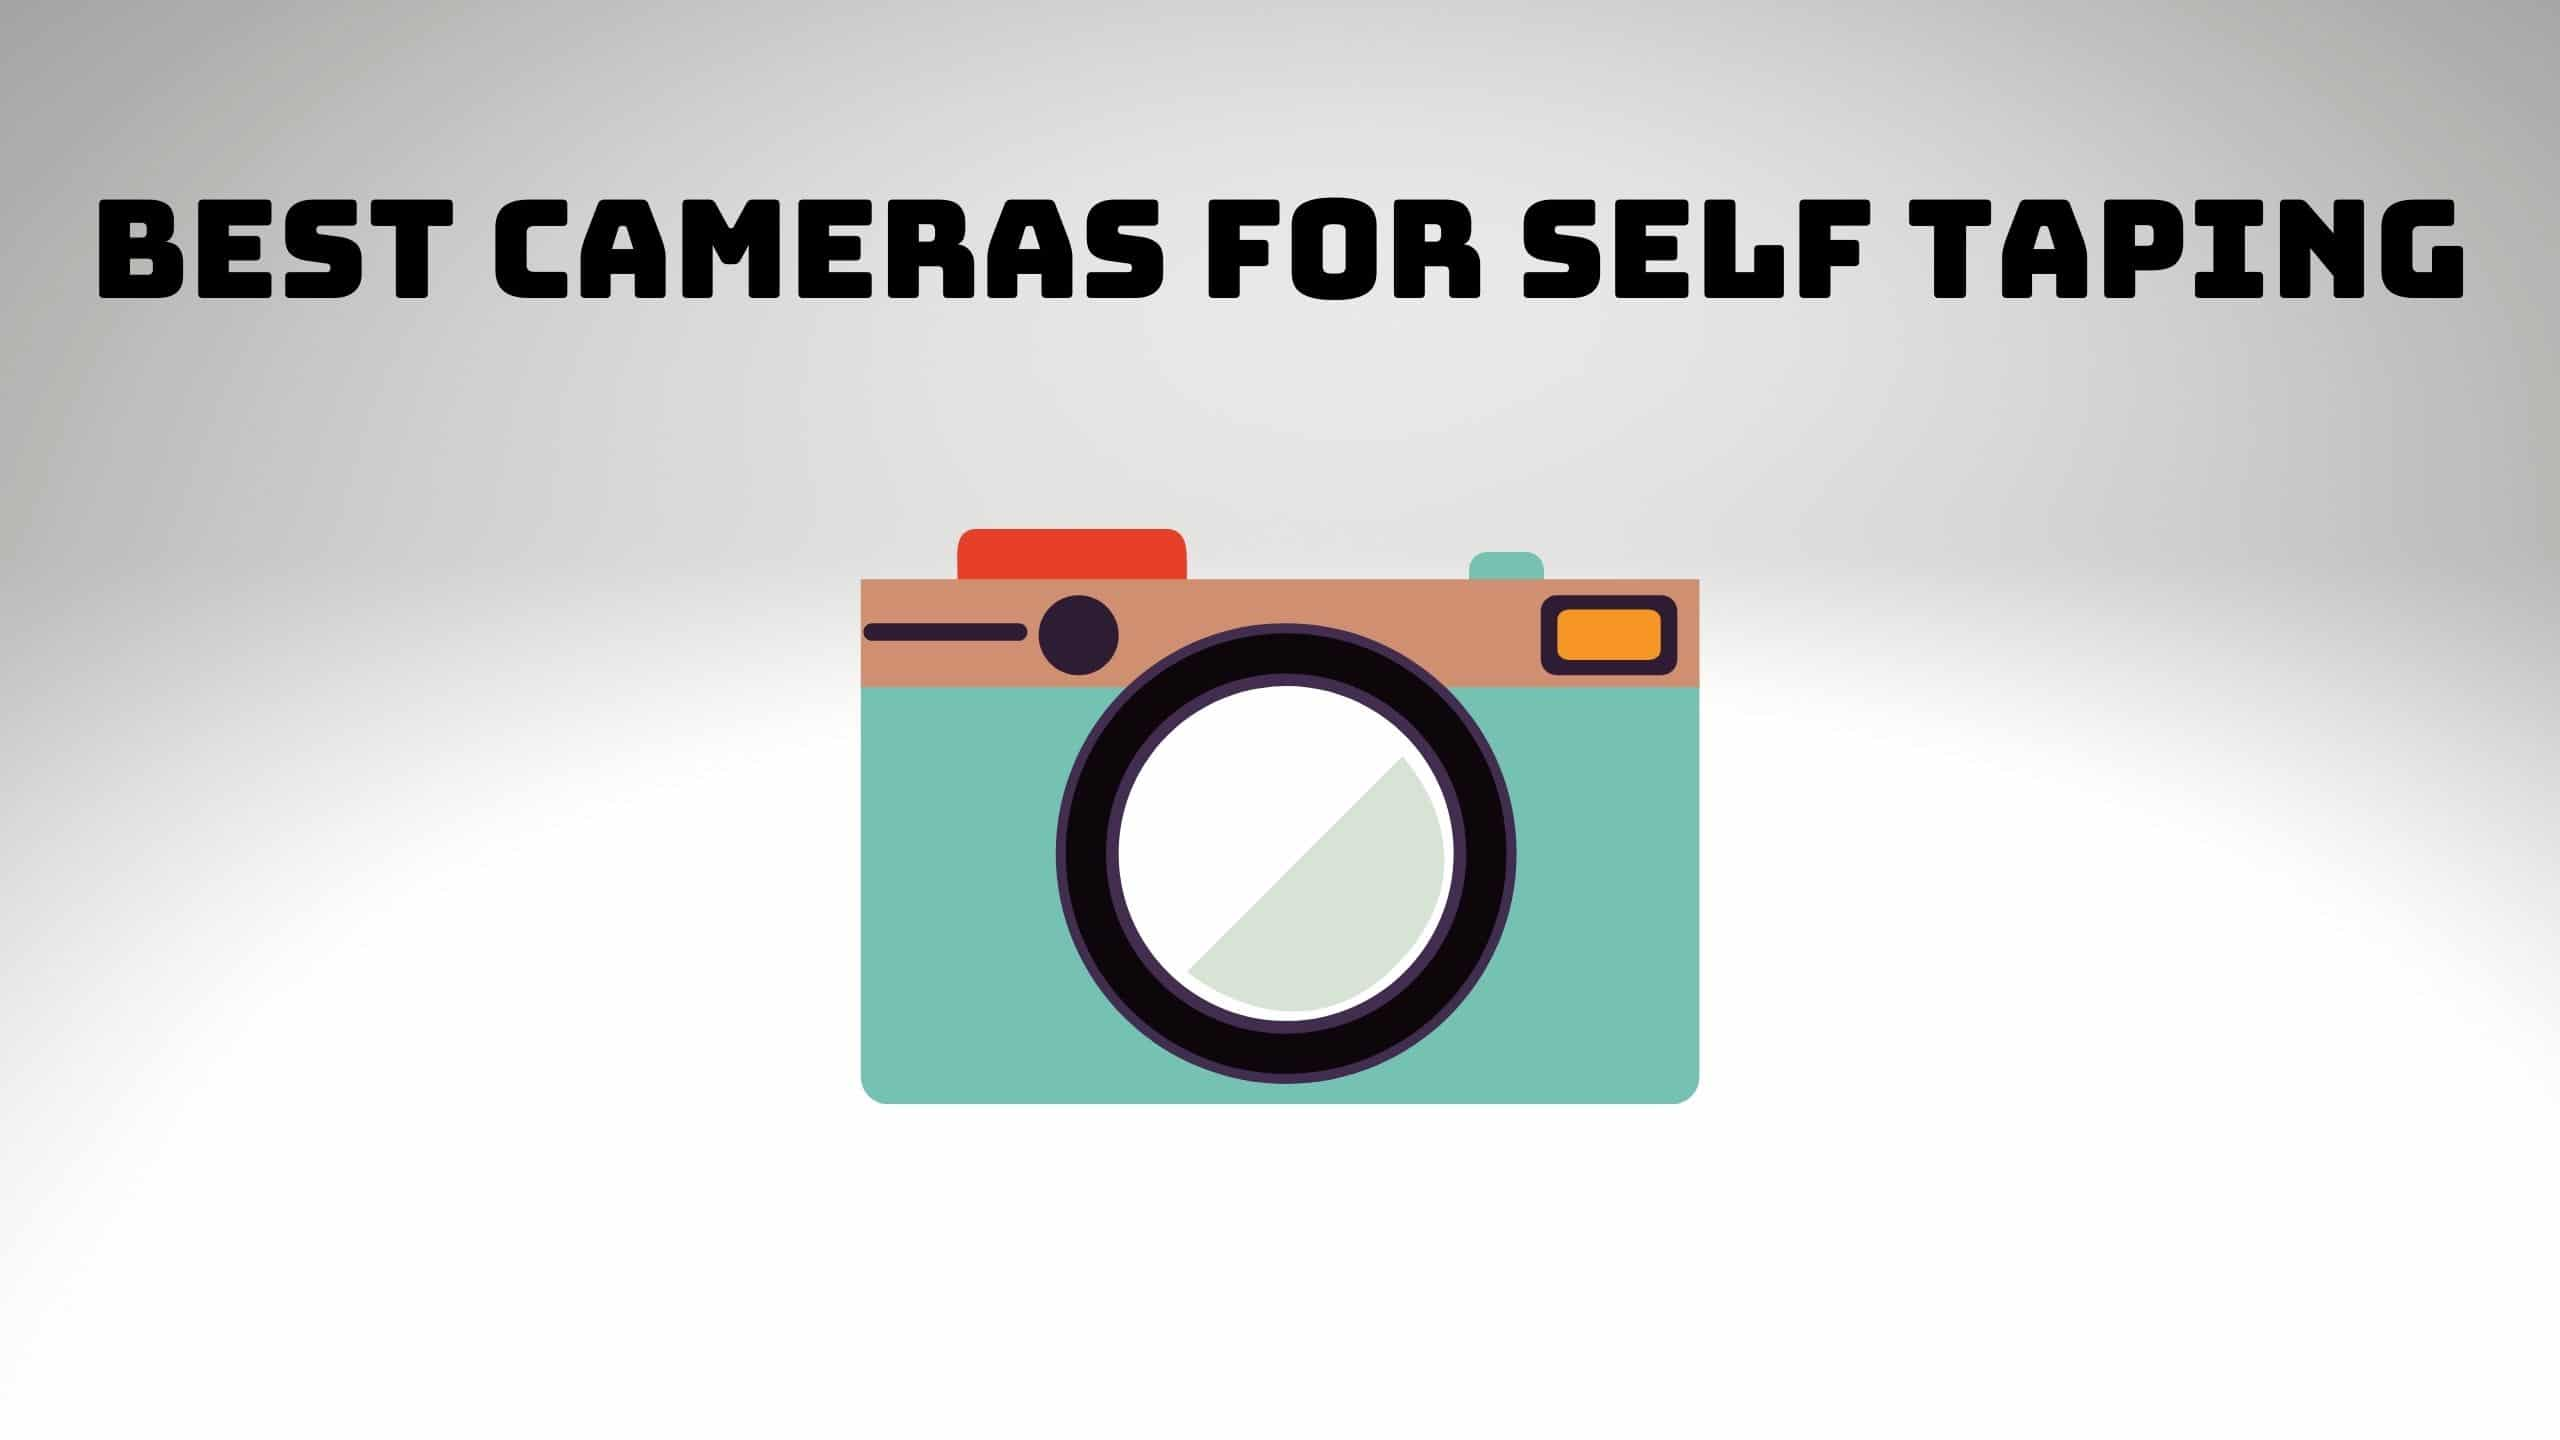 Best Cameras for Self Taping (1)